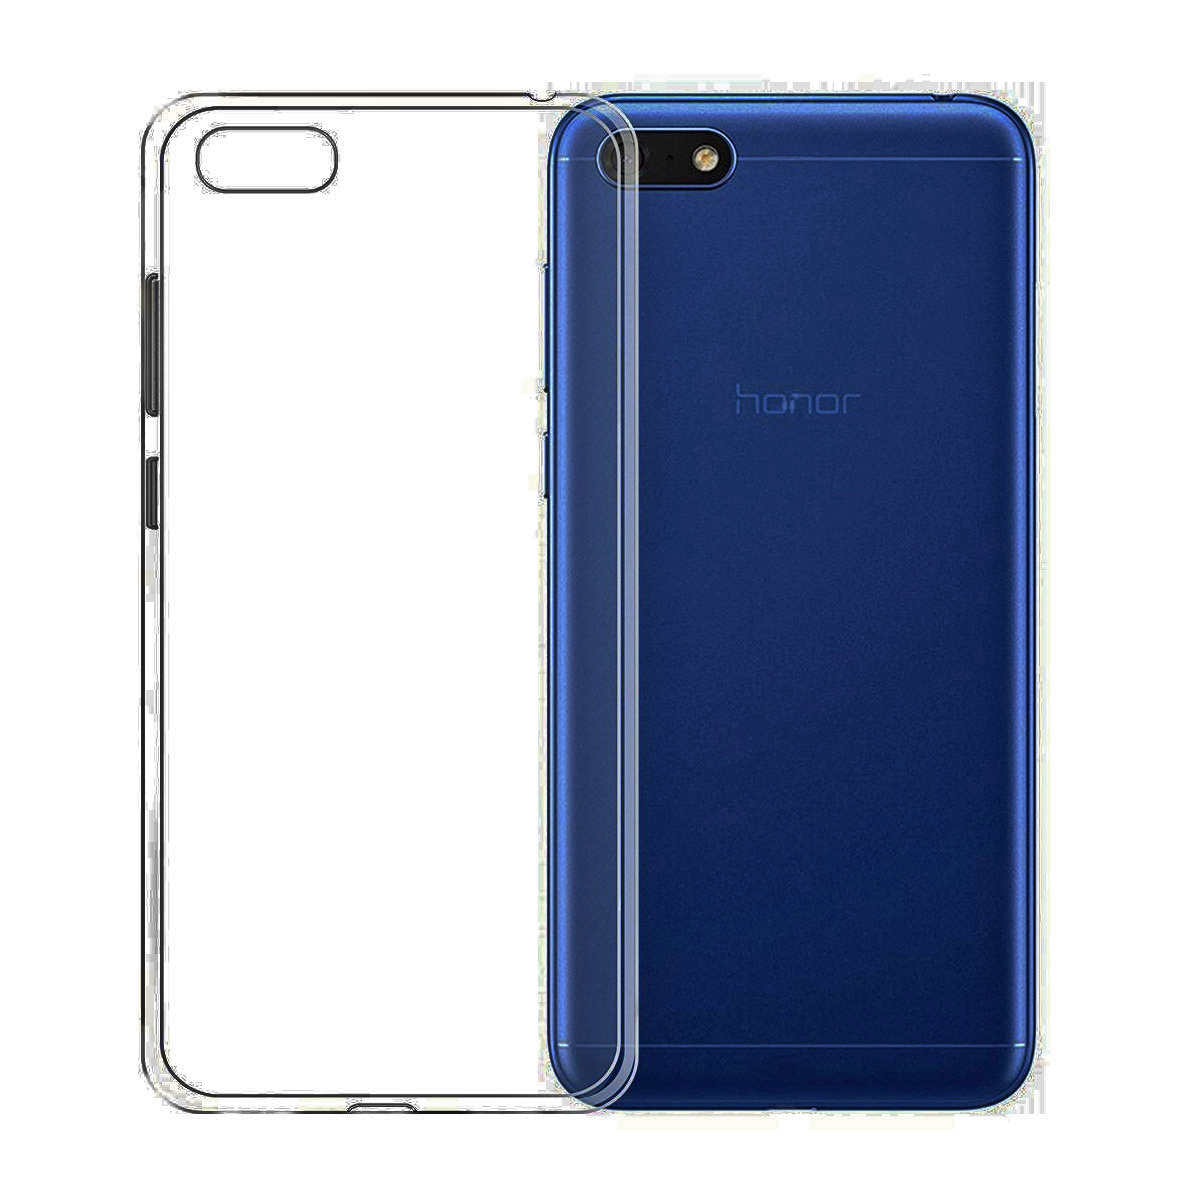 for Huawei <font><b>Honor</b></font> 7A 8A Pro 8S 8C <font><b>8X</b></font> <font><b>Max</b></font> 7C 7s <font><b>Case</b></font> Clear Transparent Soft Gel TPU Silicone Phone Cover AUM-AL00/AL20/Dua-L22 image